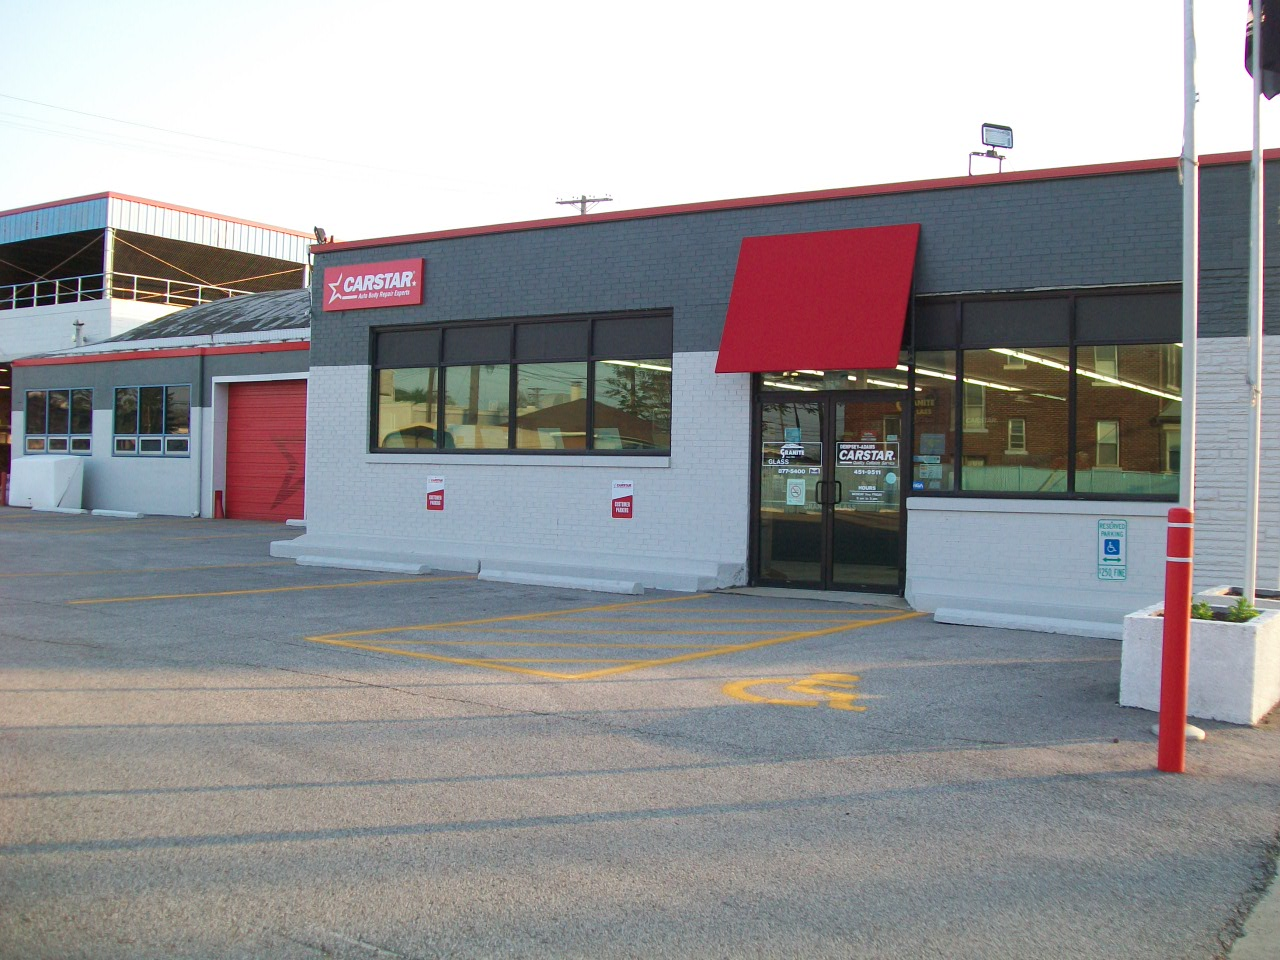 Come visit Dempsey-Adams CARSTAR in Granite City, IL for your collision repair needs today!